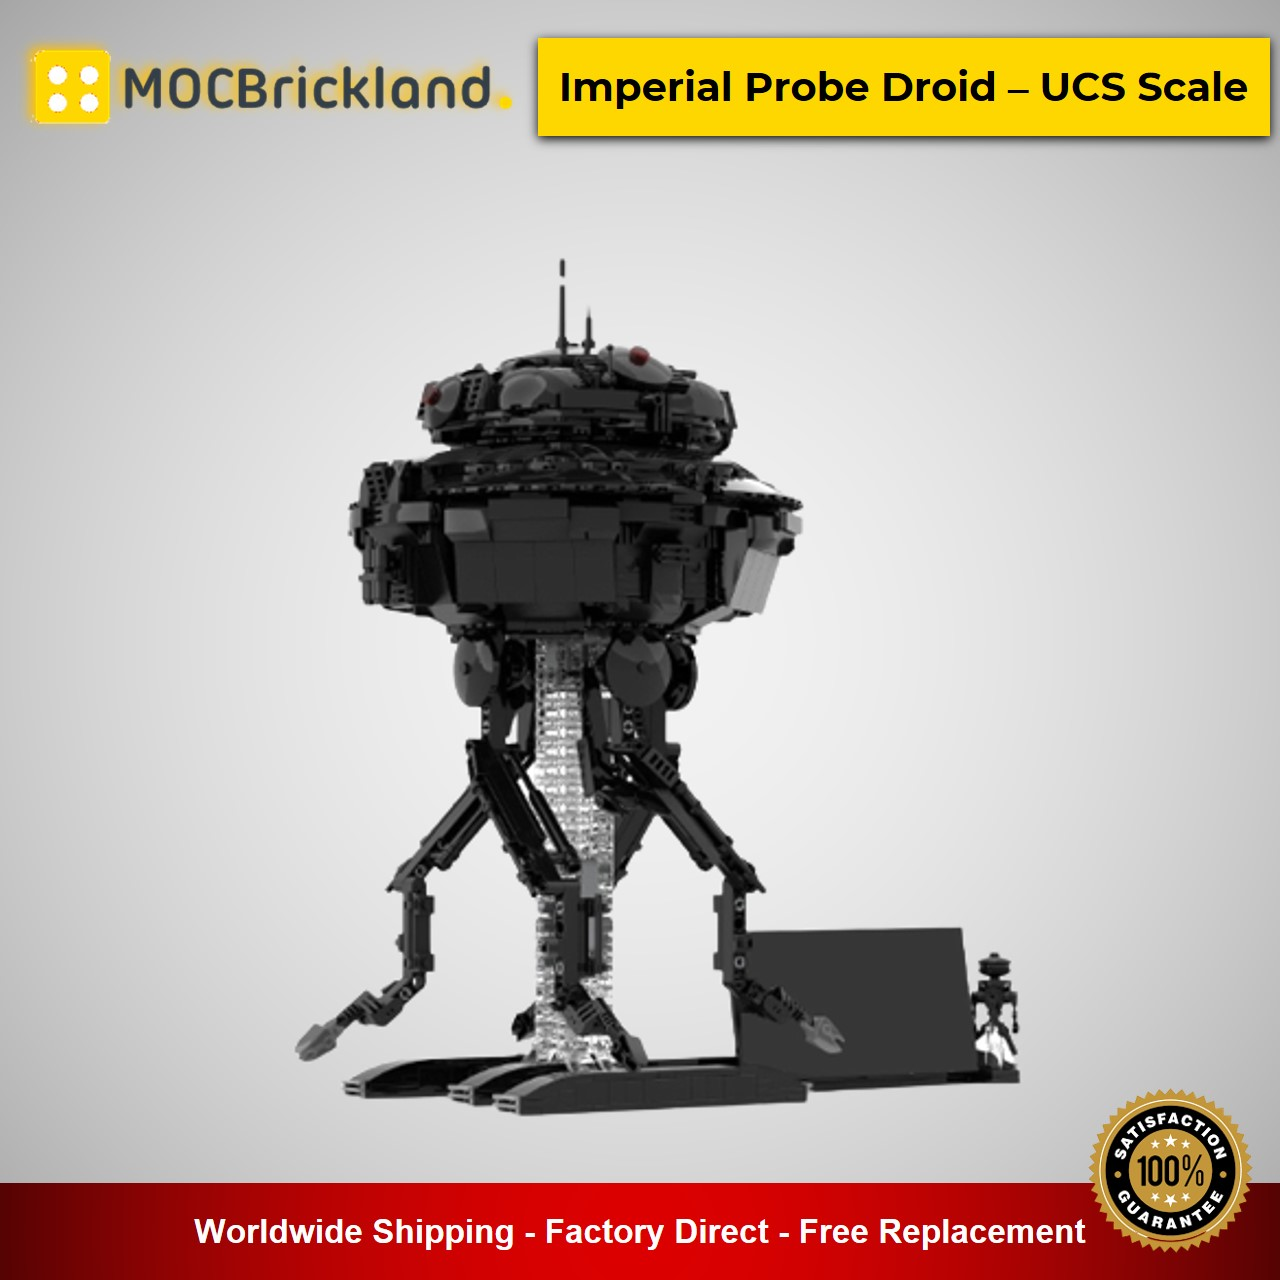 MOC-43368 Imperial Probe Droid – UCS Scale by Jeffy-O With 1063 Pieces